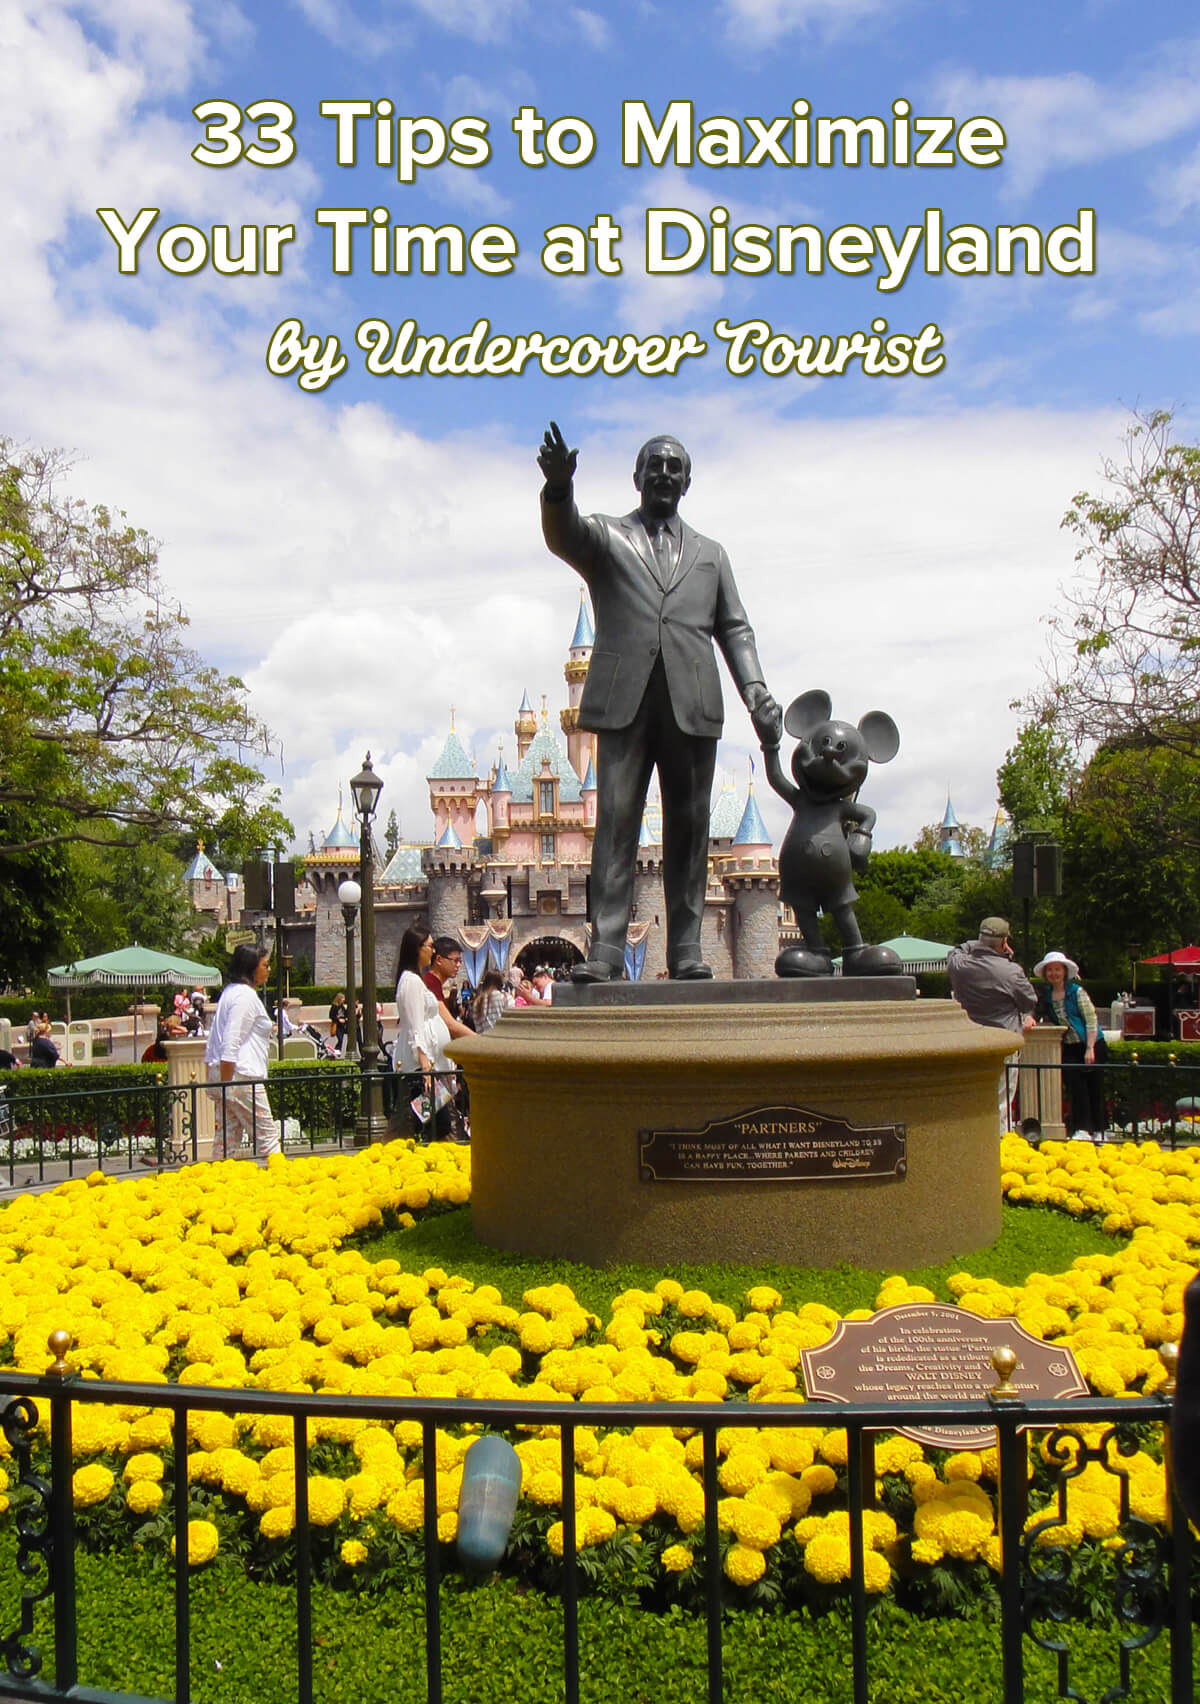 Maximize your time at Disneyland